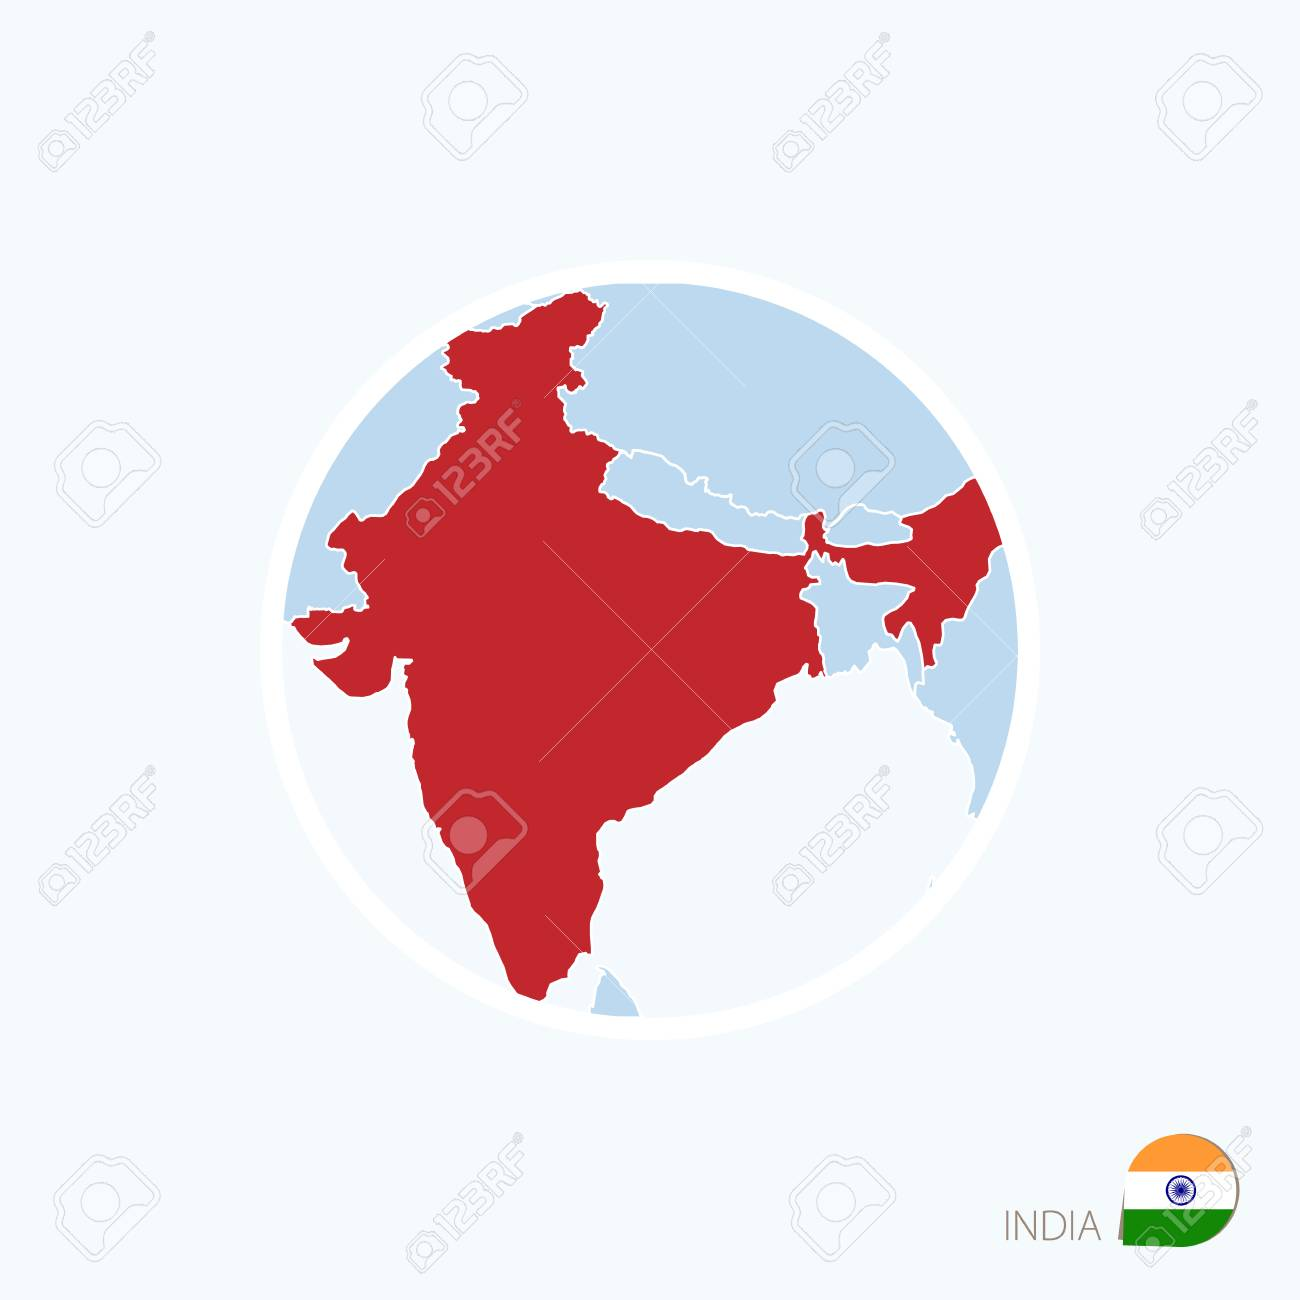 Map icon of india blue map of south asia with highlighted india map icon of india blue map of south asia with highlighted india in red color gumiabroncs Image collections